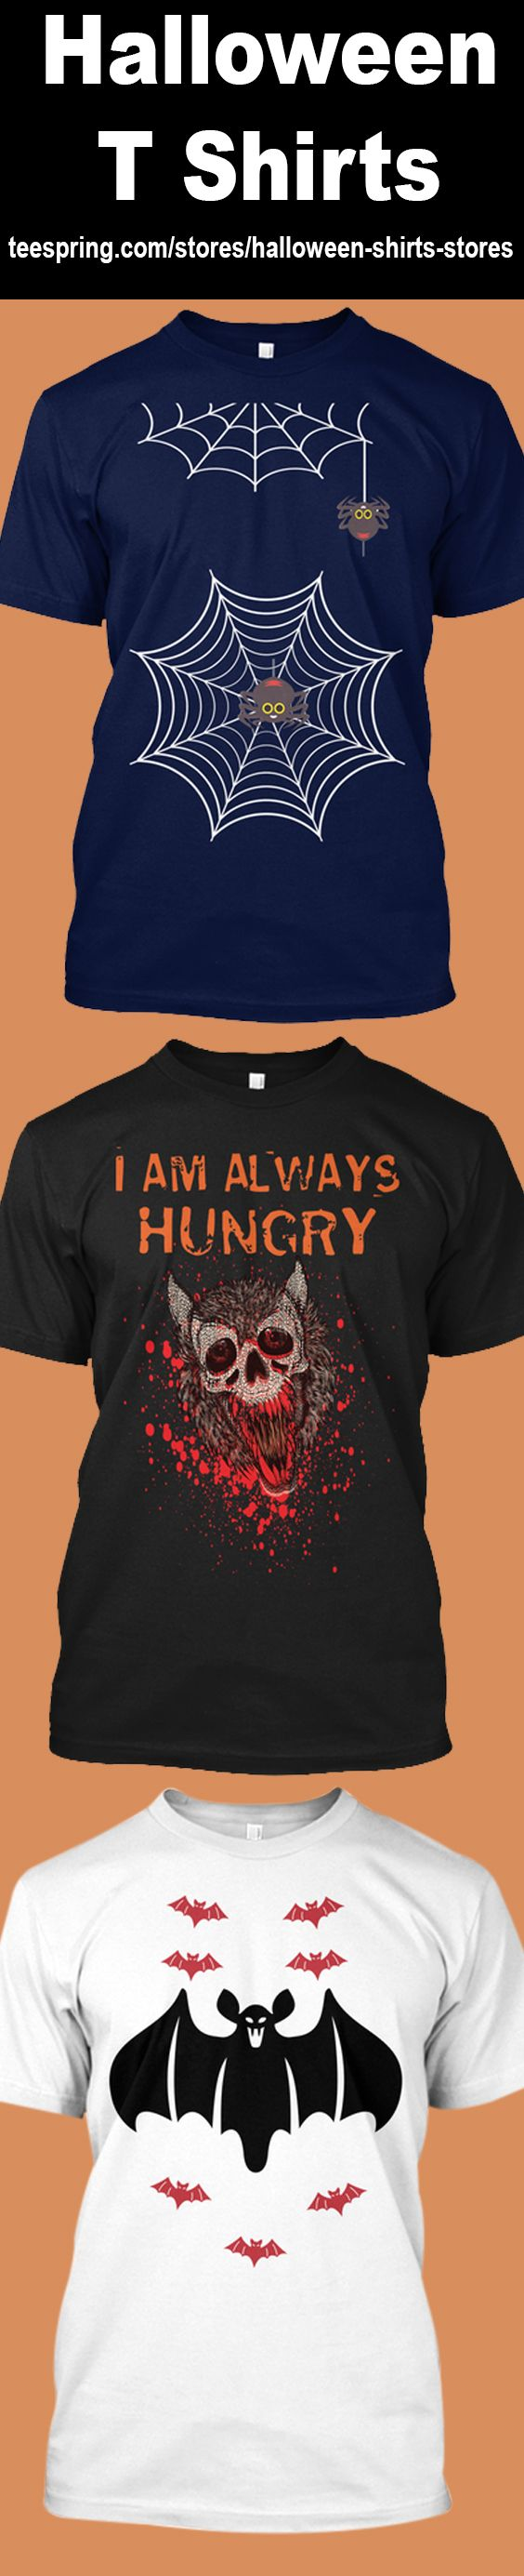 Choose your favorite Halloween shirt from a wide variety of unique high-quality designs in various styles, colors and fits. Shop online at Teespring (halloween t shirt store) now! #halloween #Costume #HalloweenStore #HappyHalloween